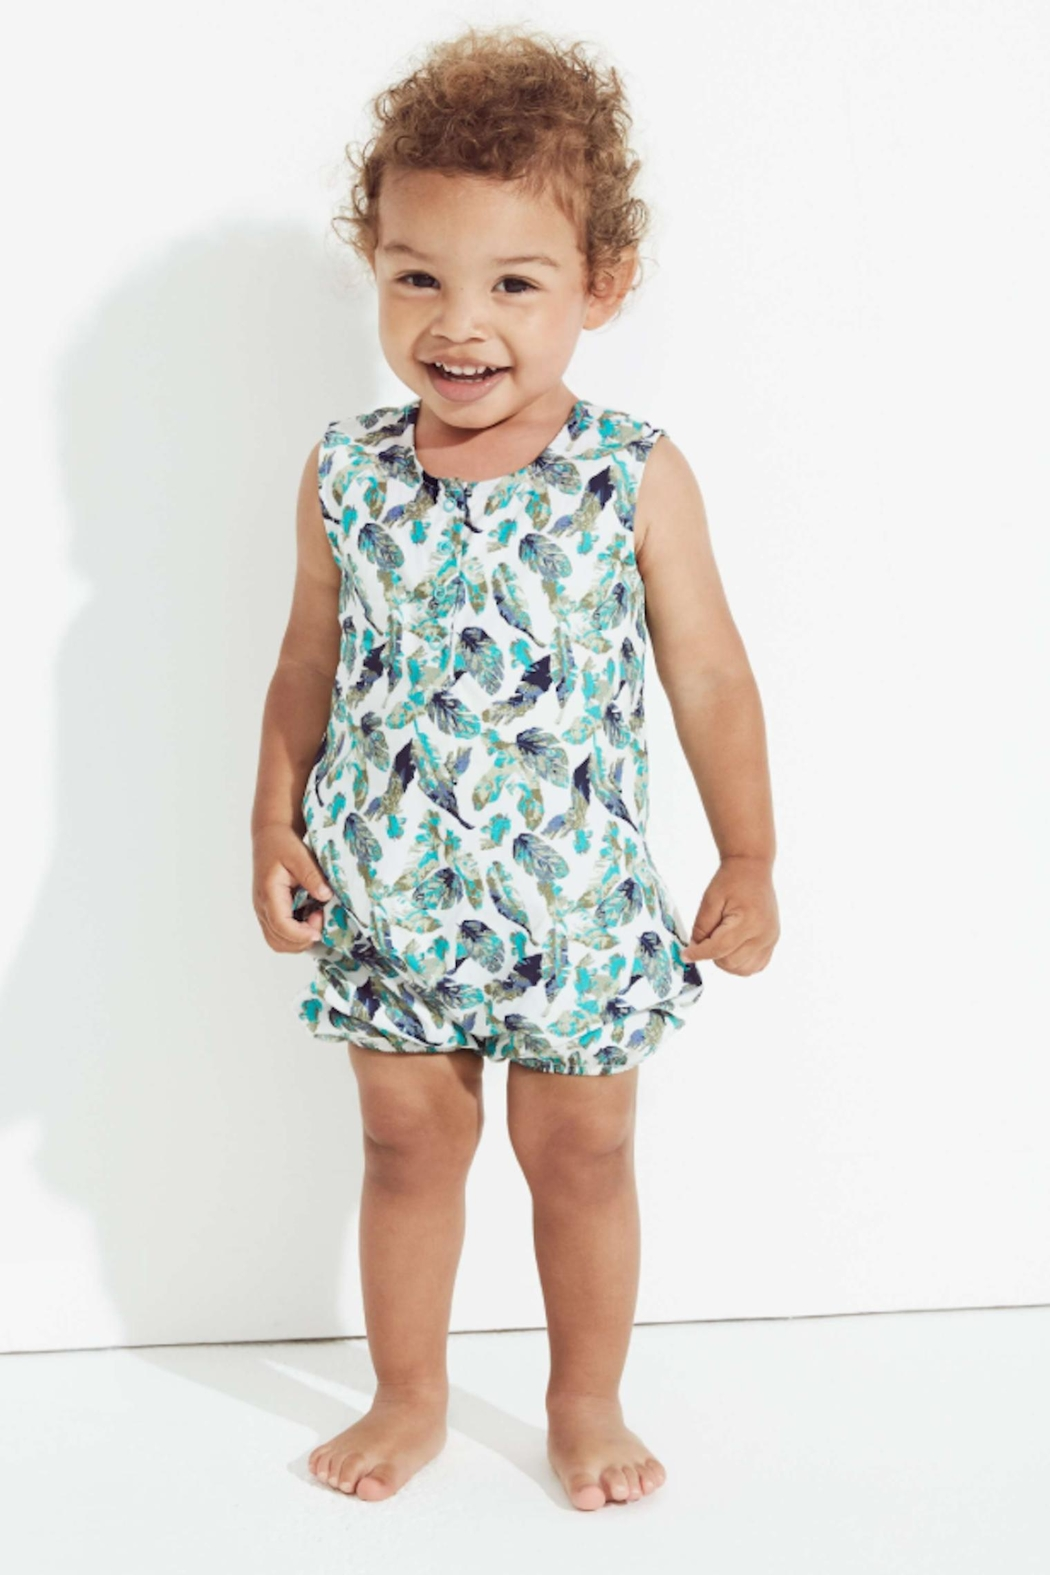 f9c8c08f2af3 Egg by Susan Lazar Nathan Sleeveless Romper from New York by Lex ...